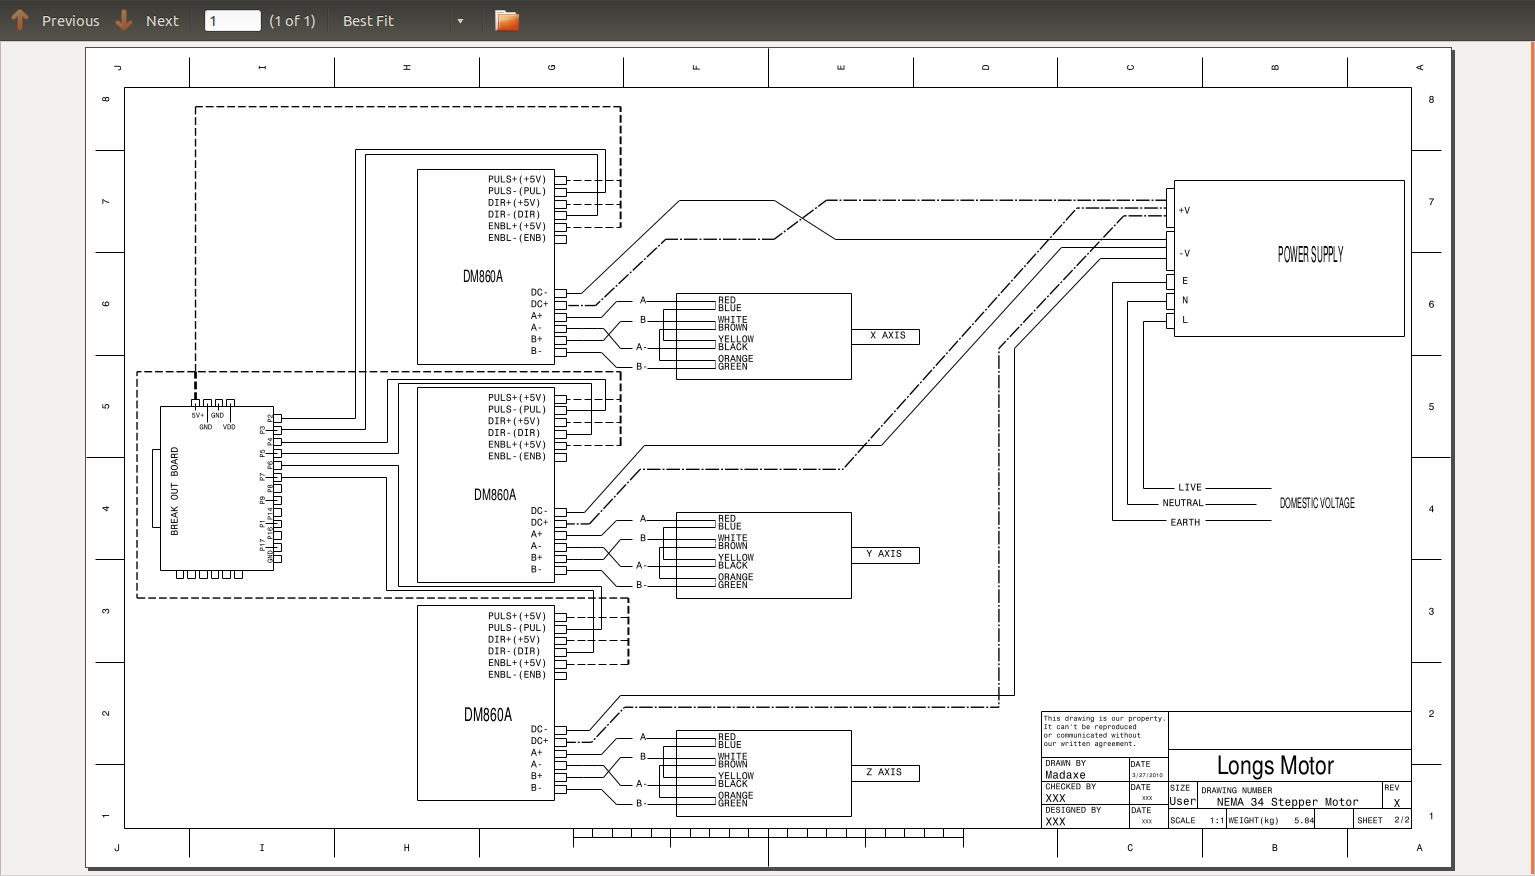 motor wiring linux with diy cnc router longs stepper motor wiring diagram at eliteediting.co